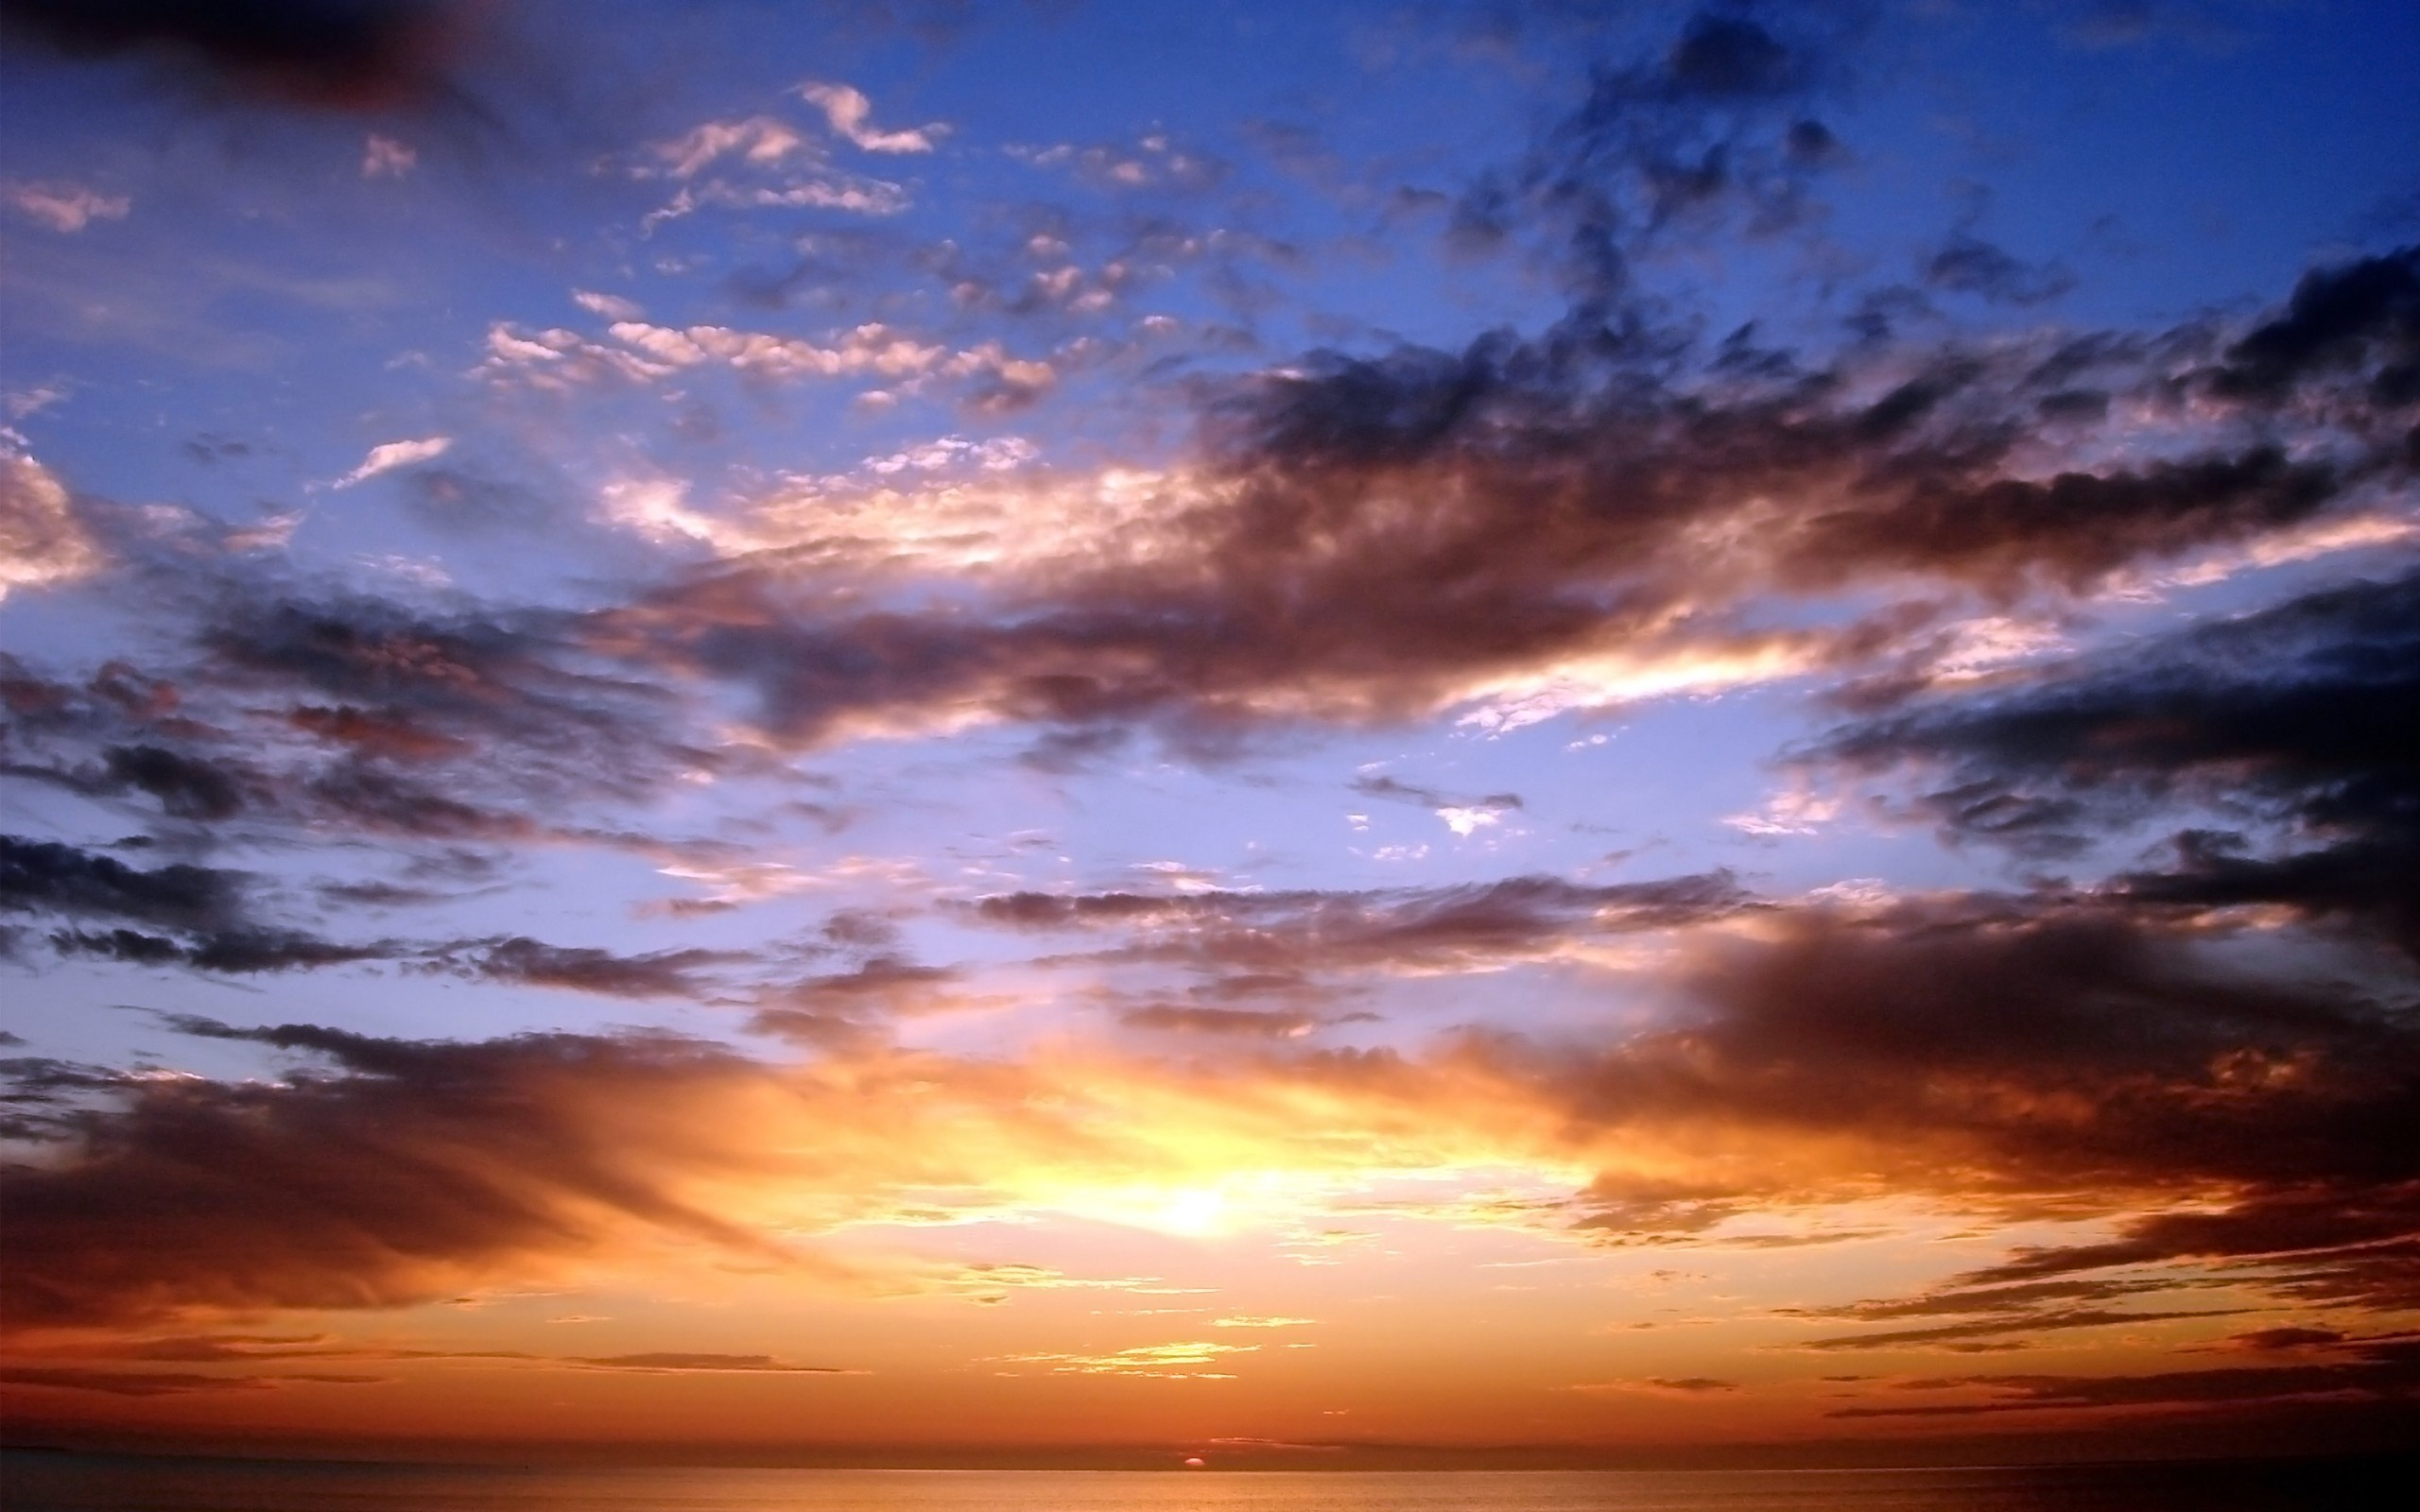 ... Sunset, Clouds, Sea, Sky, Nature | Free HD wallpapers